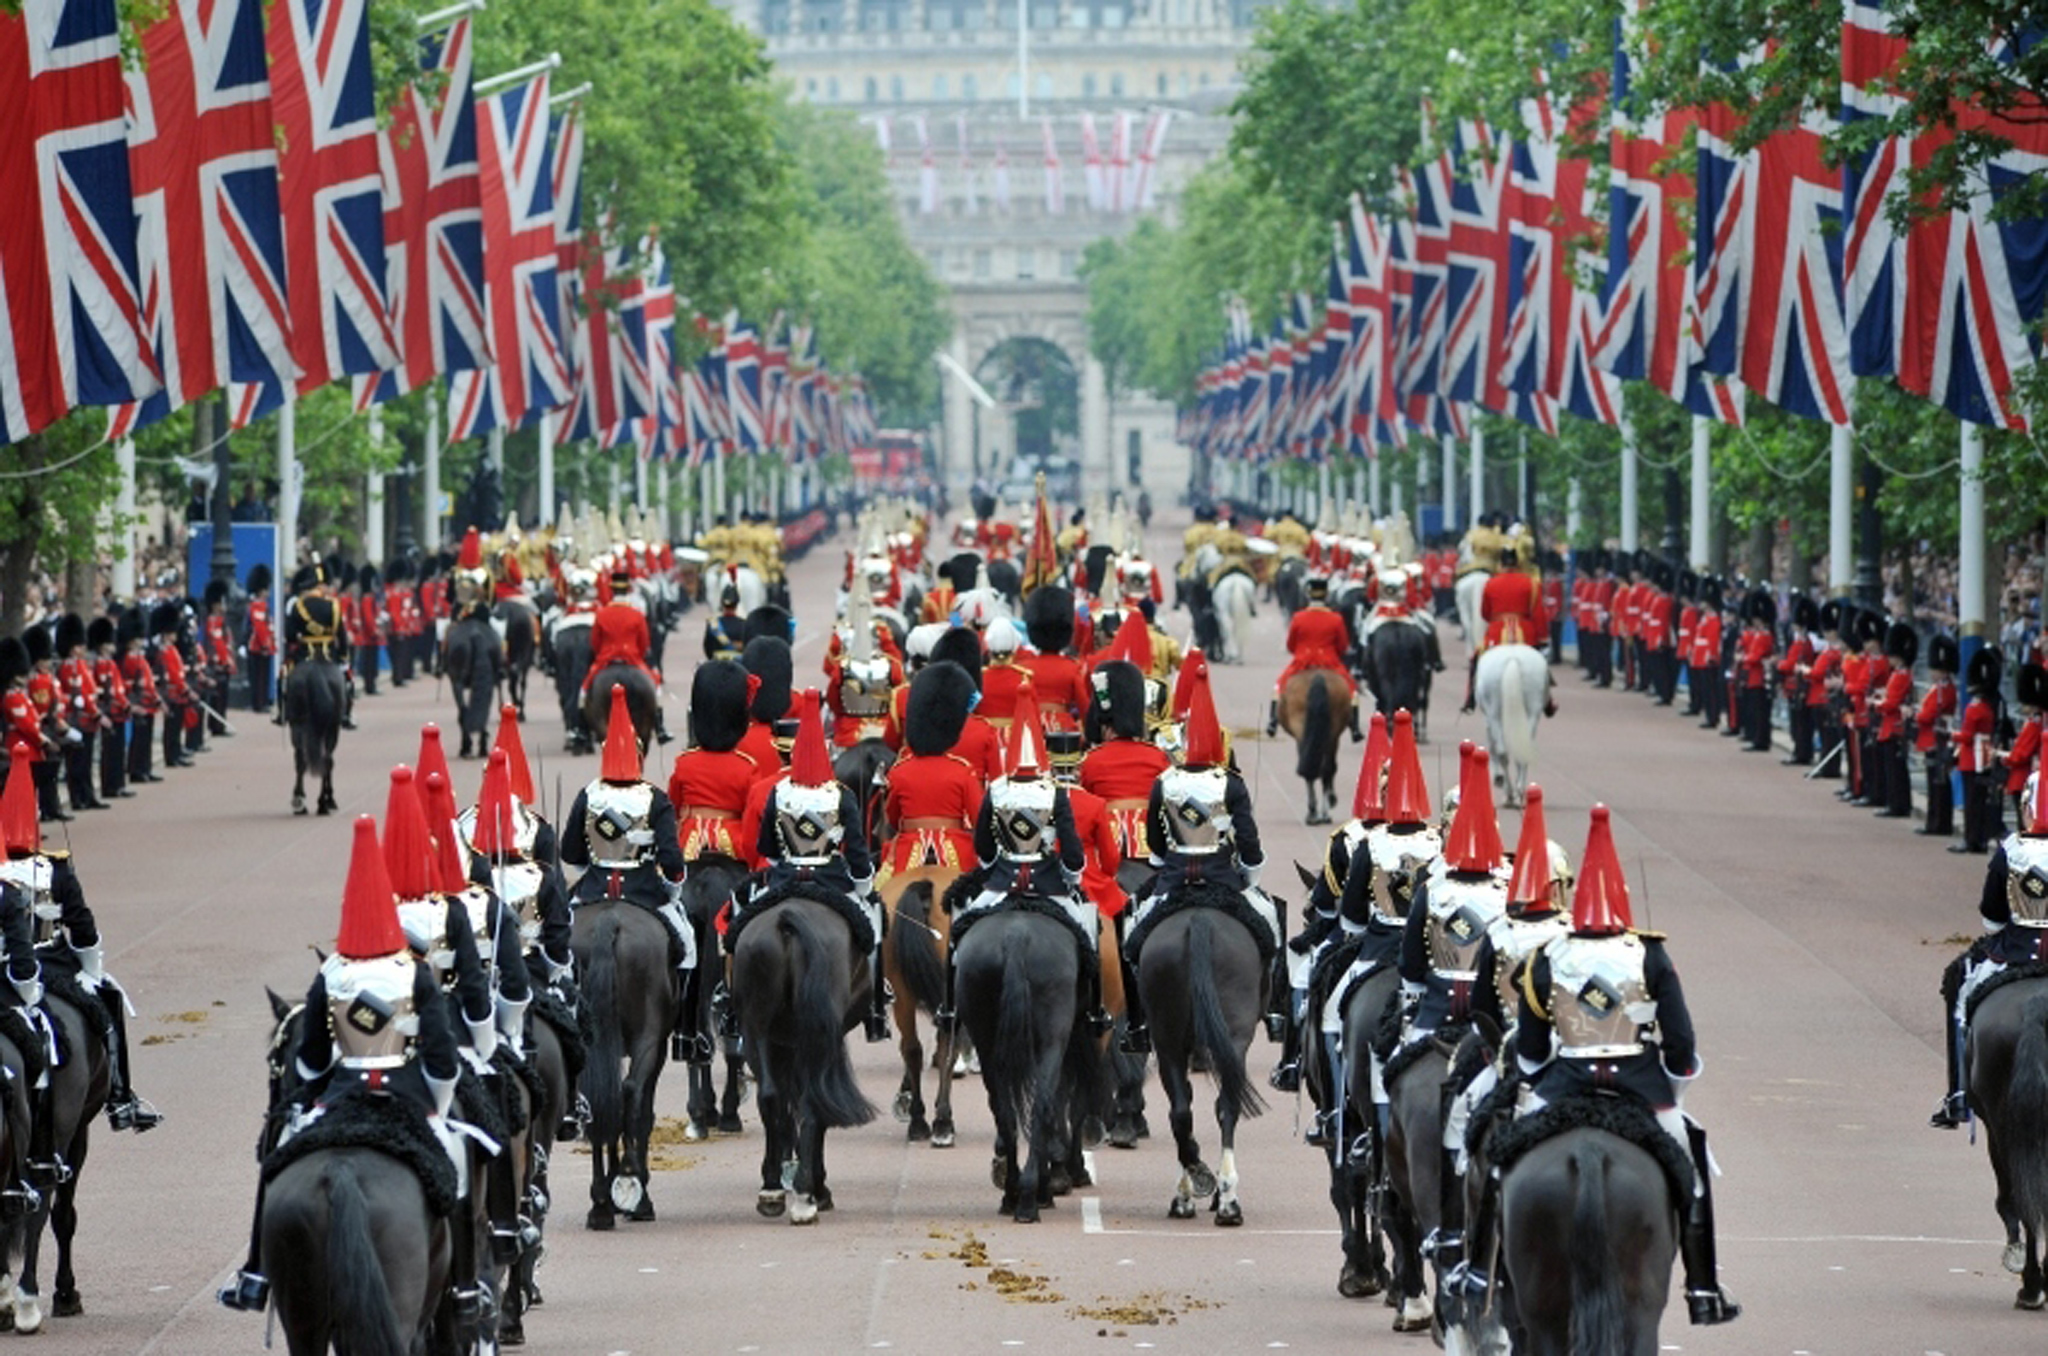 Trooping the Colour: The Queen's Birthday Parade | Things ...